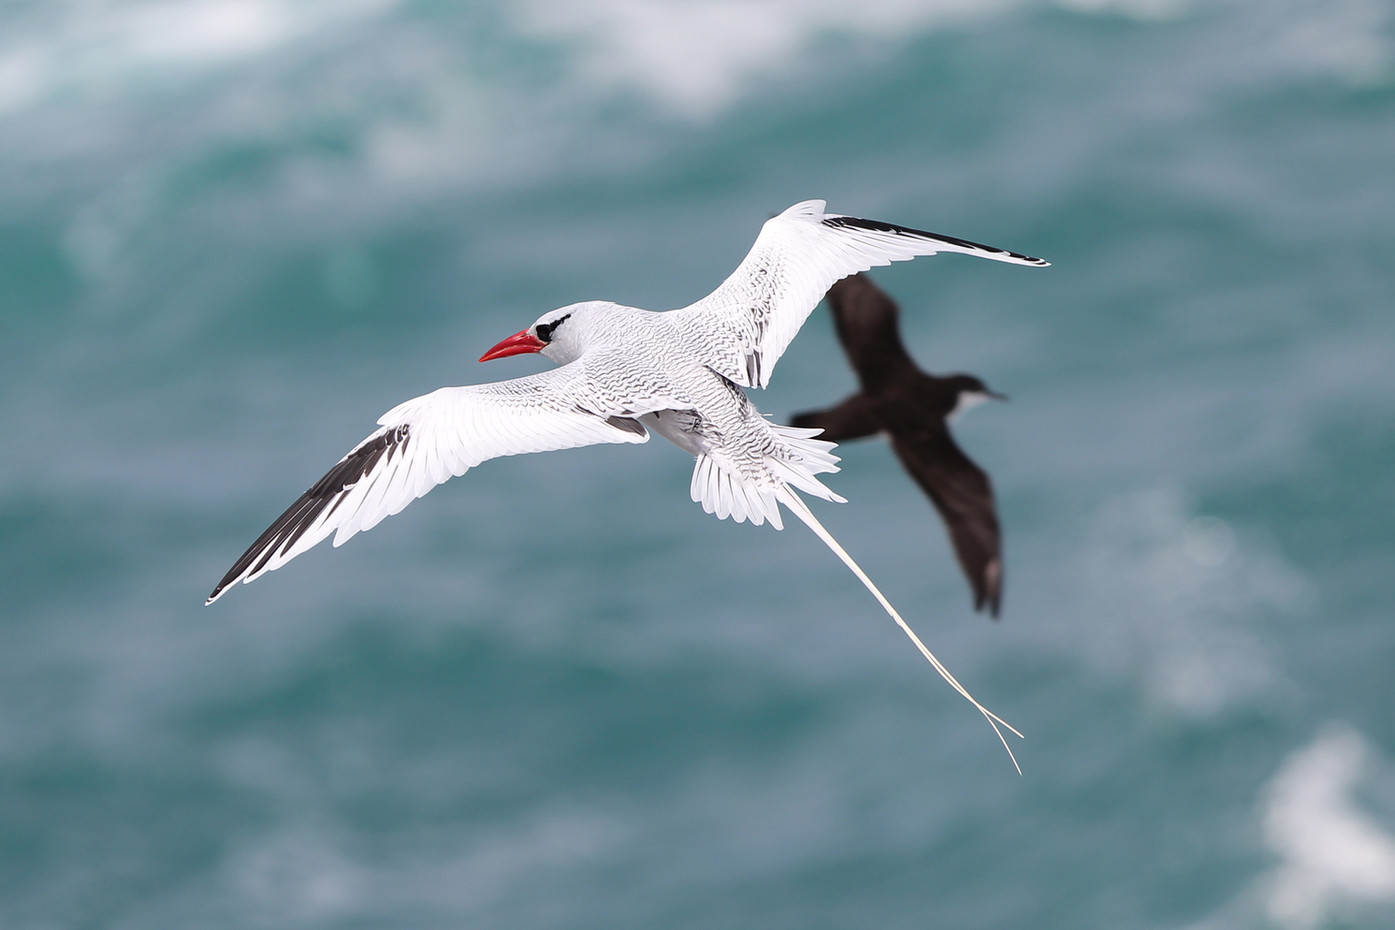 Red-billed Tropic Bird and Storm Petrel in the Galapagos Islands, Equador